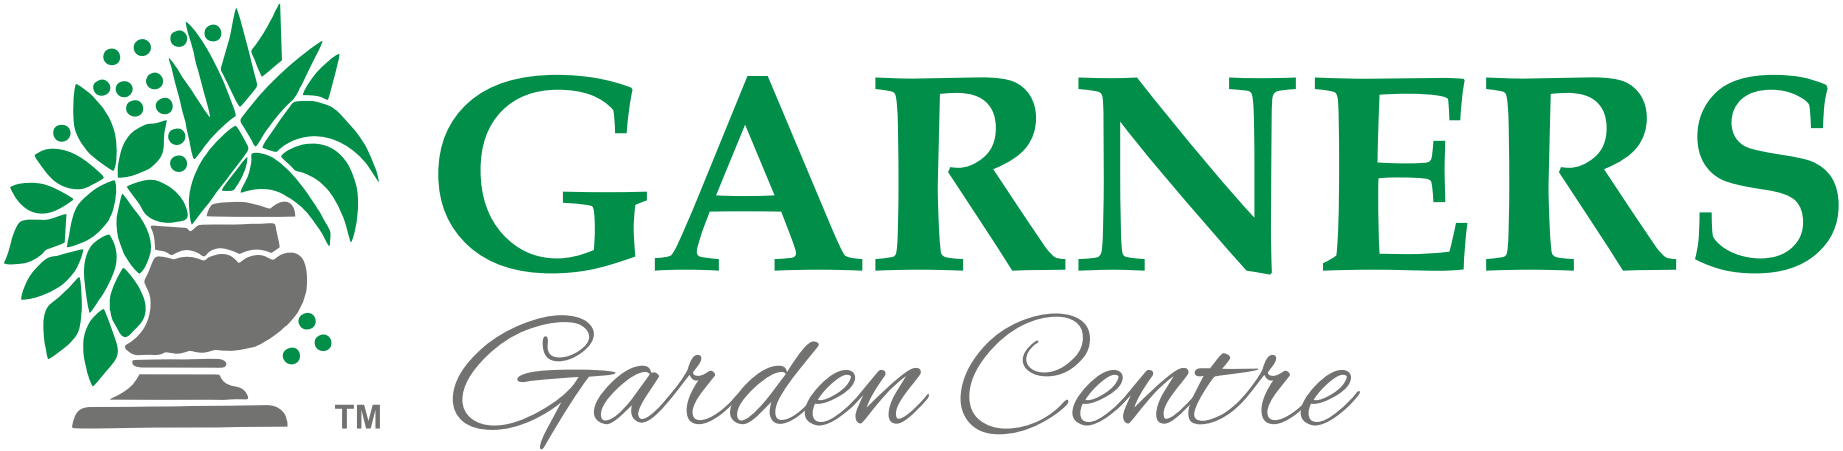 Delightful About Garners Garden Centre | Family Business | Family Run Garden Centre | Garden  Centre Stoke | Traditional Garden Centre | Online Garden Centre